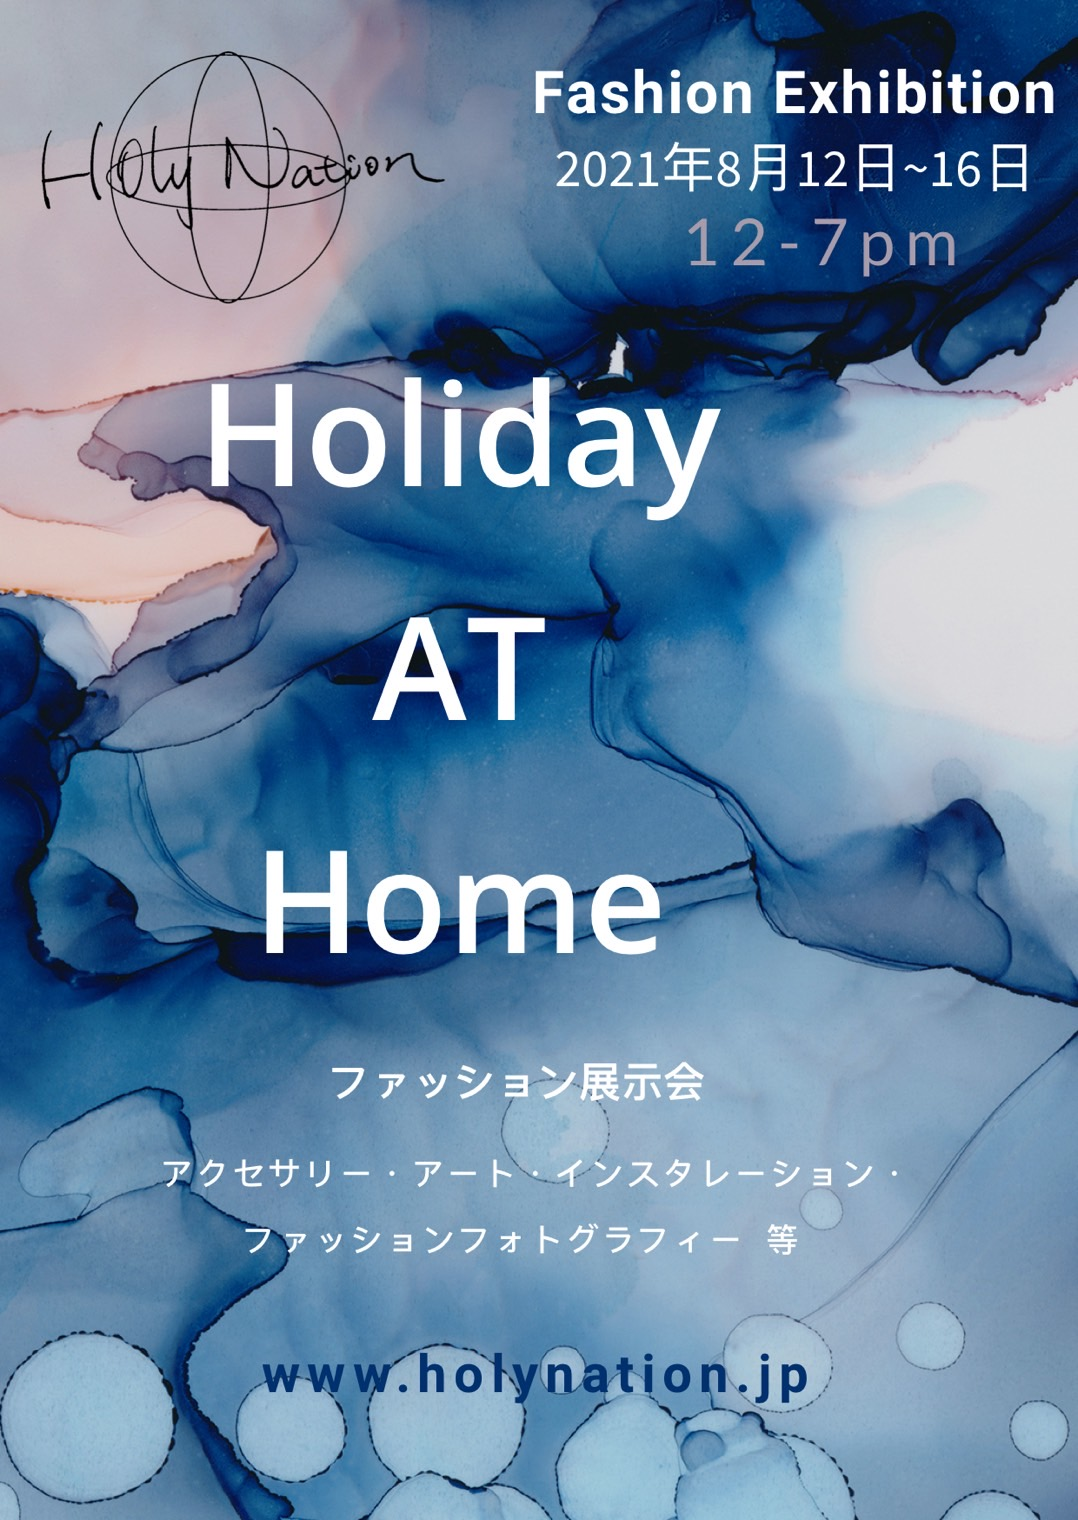 Holy Nation Fashion Exhibition「Holiday AT Home」(2021.8.12 – 8.16)